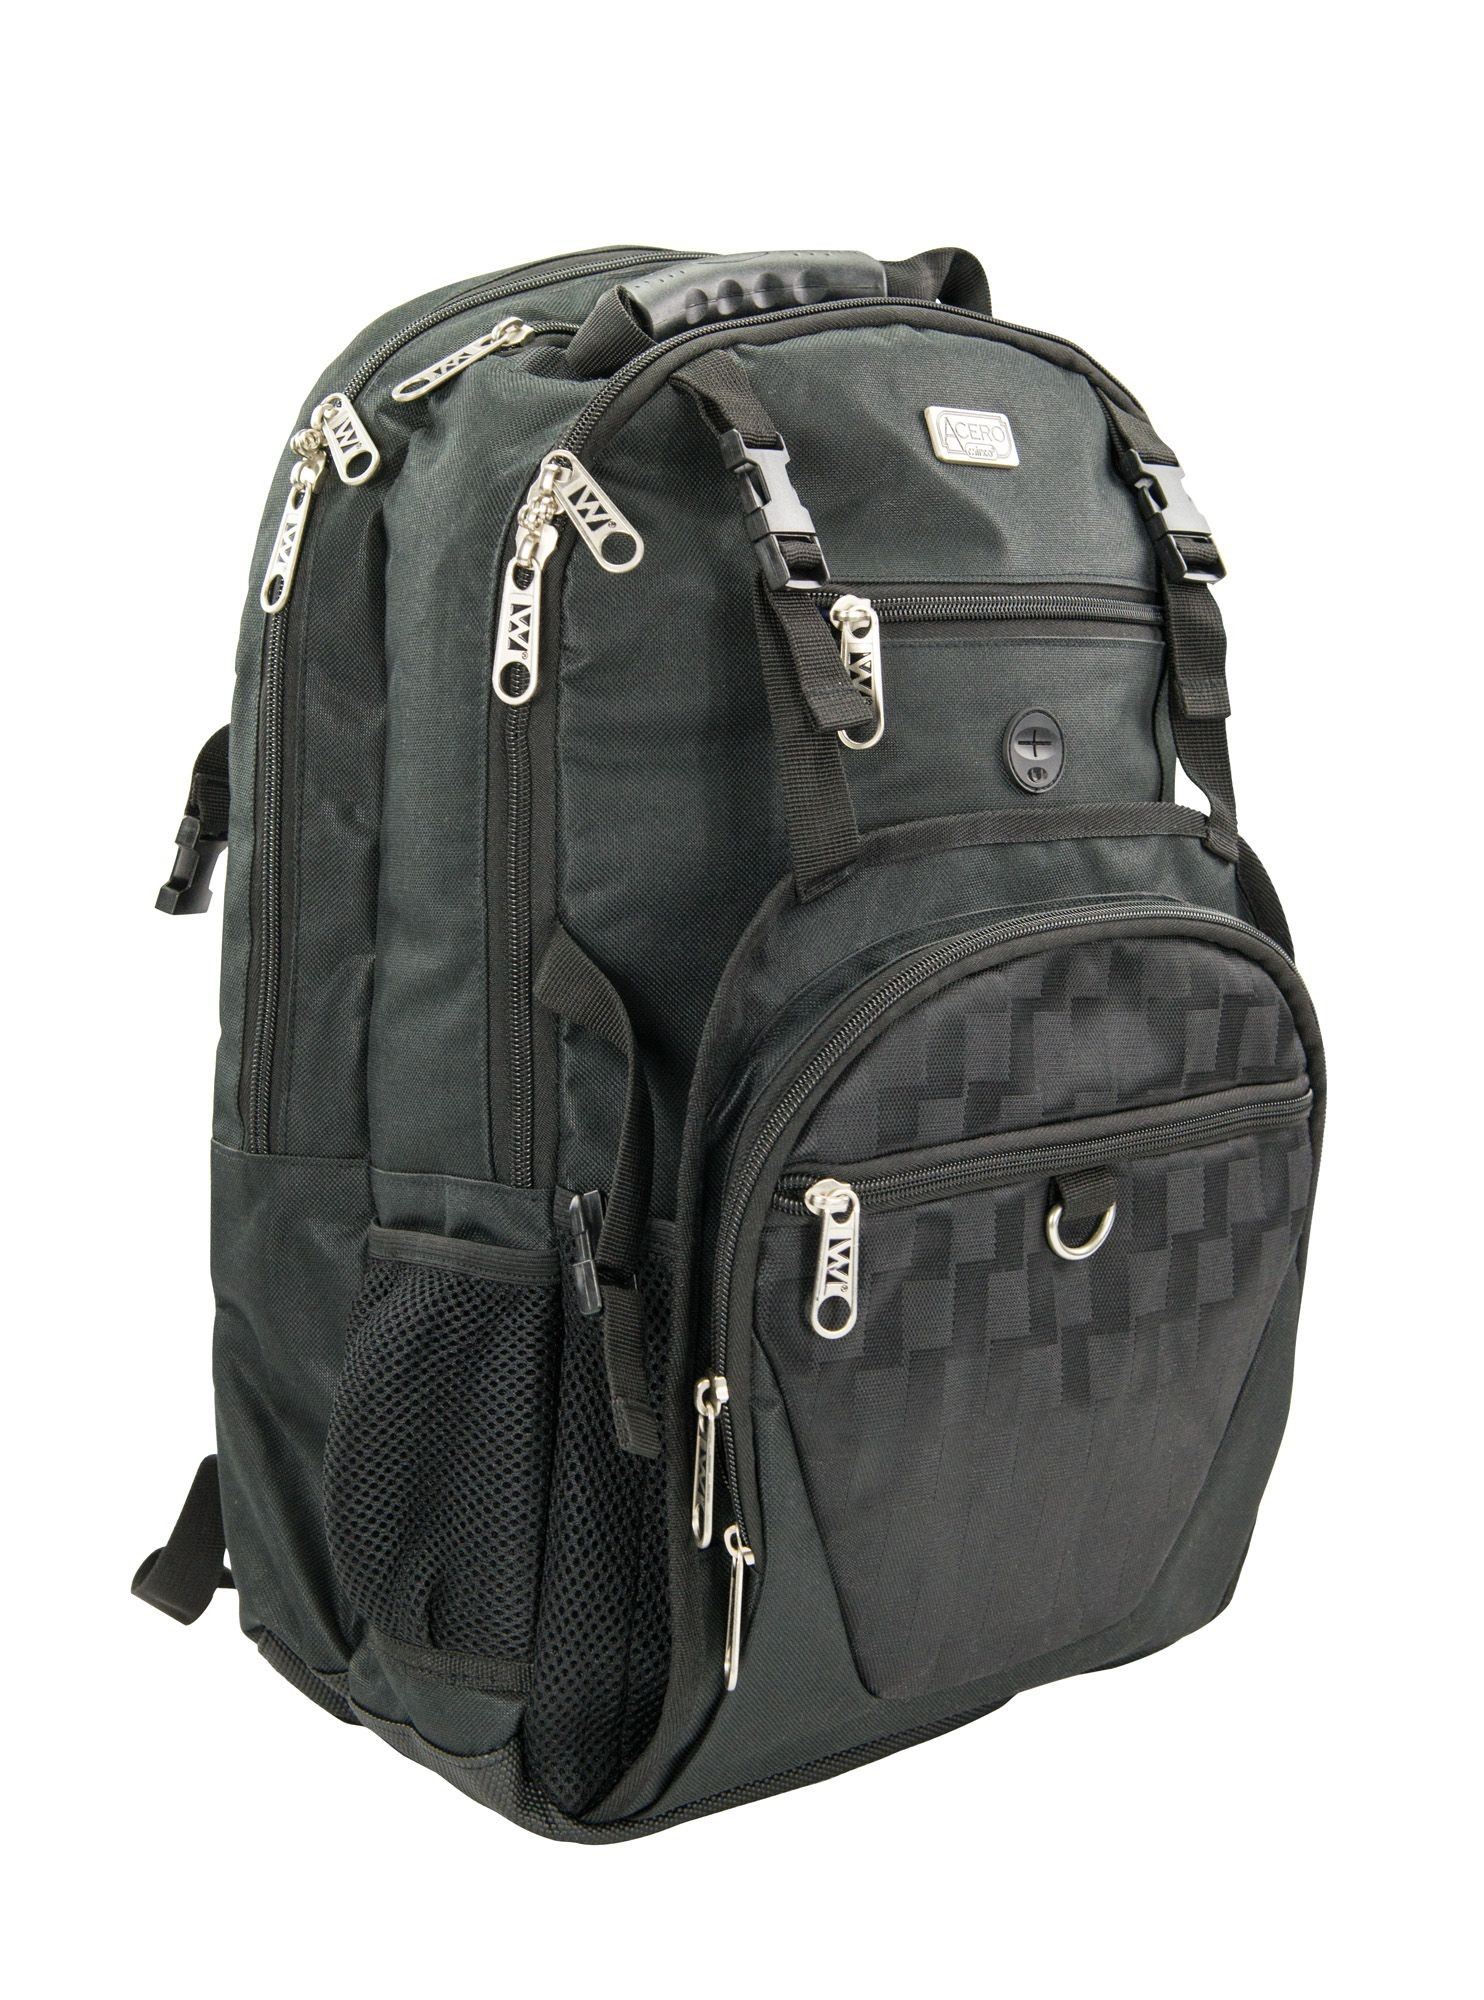 Winco KBP-1 Chef's Black Backpack